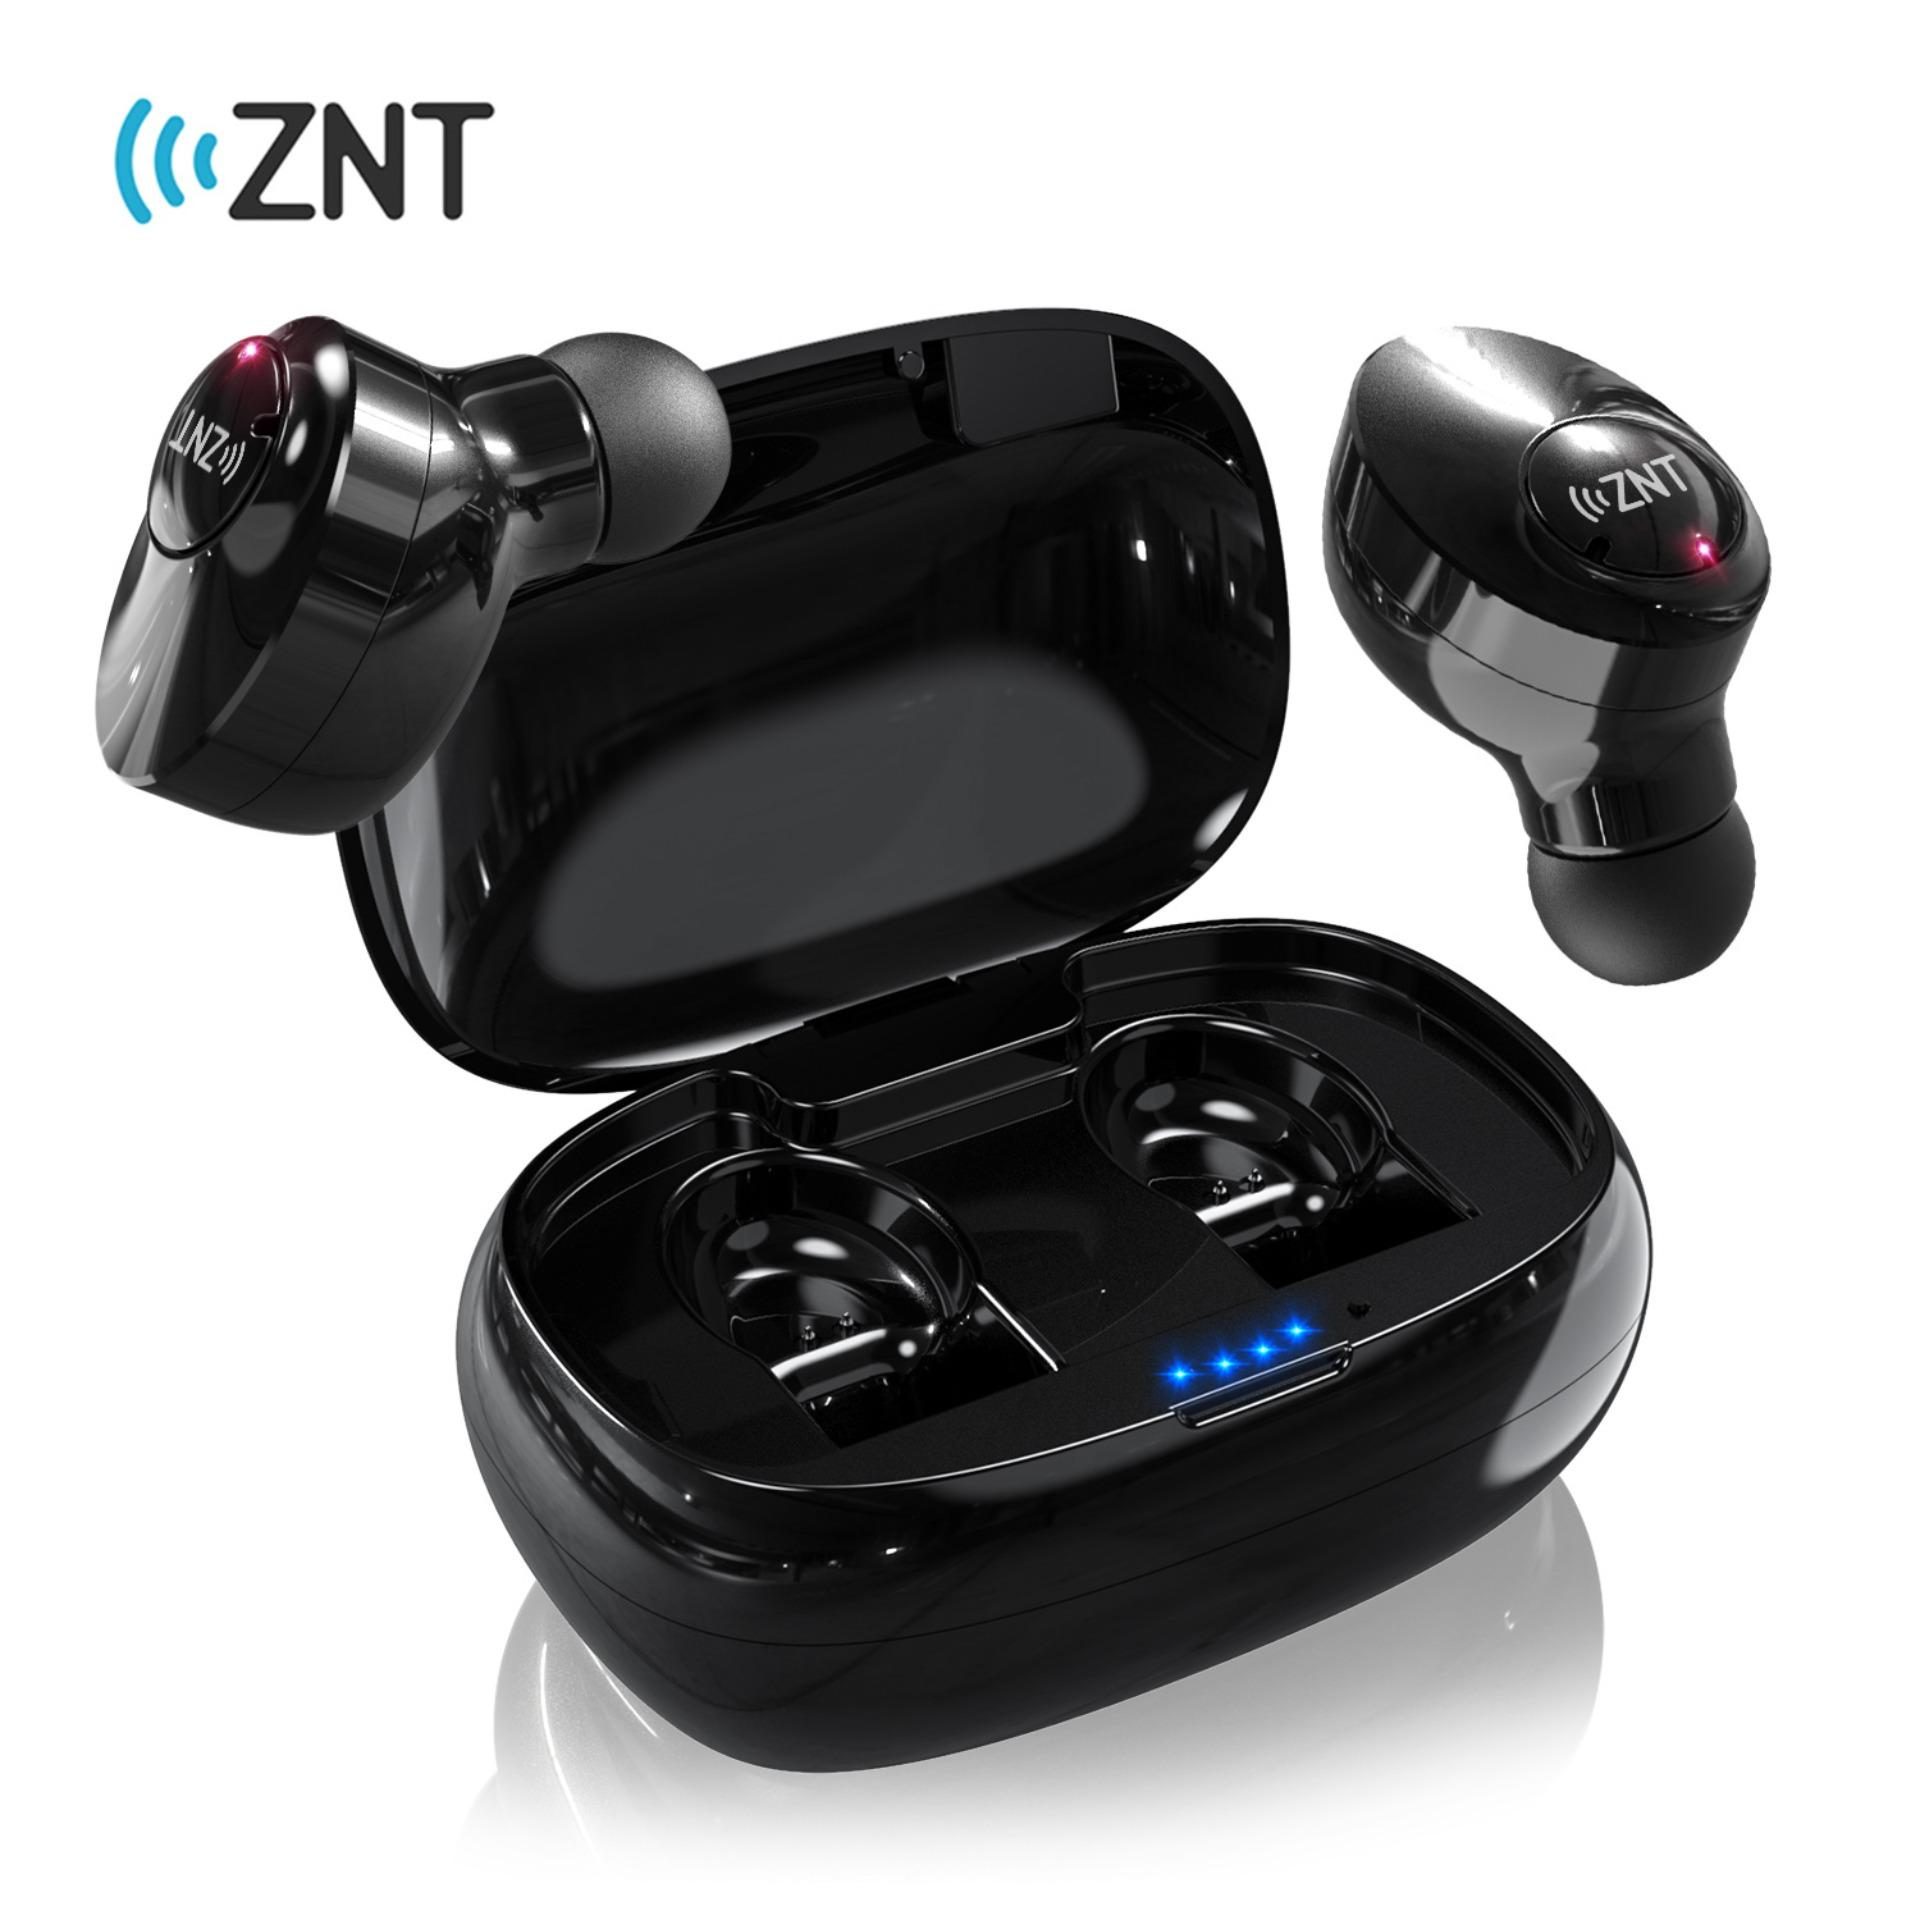 2ebbc427e87 ZNT FireFit Bluetooth 5.0 High Quality Sound True Wireless Stereo Earbuds  Bluetooth Earphone with Charging Case